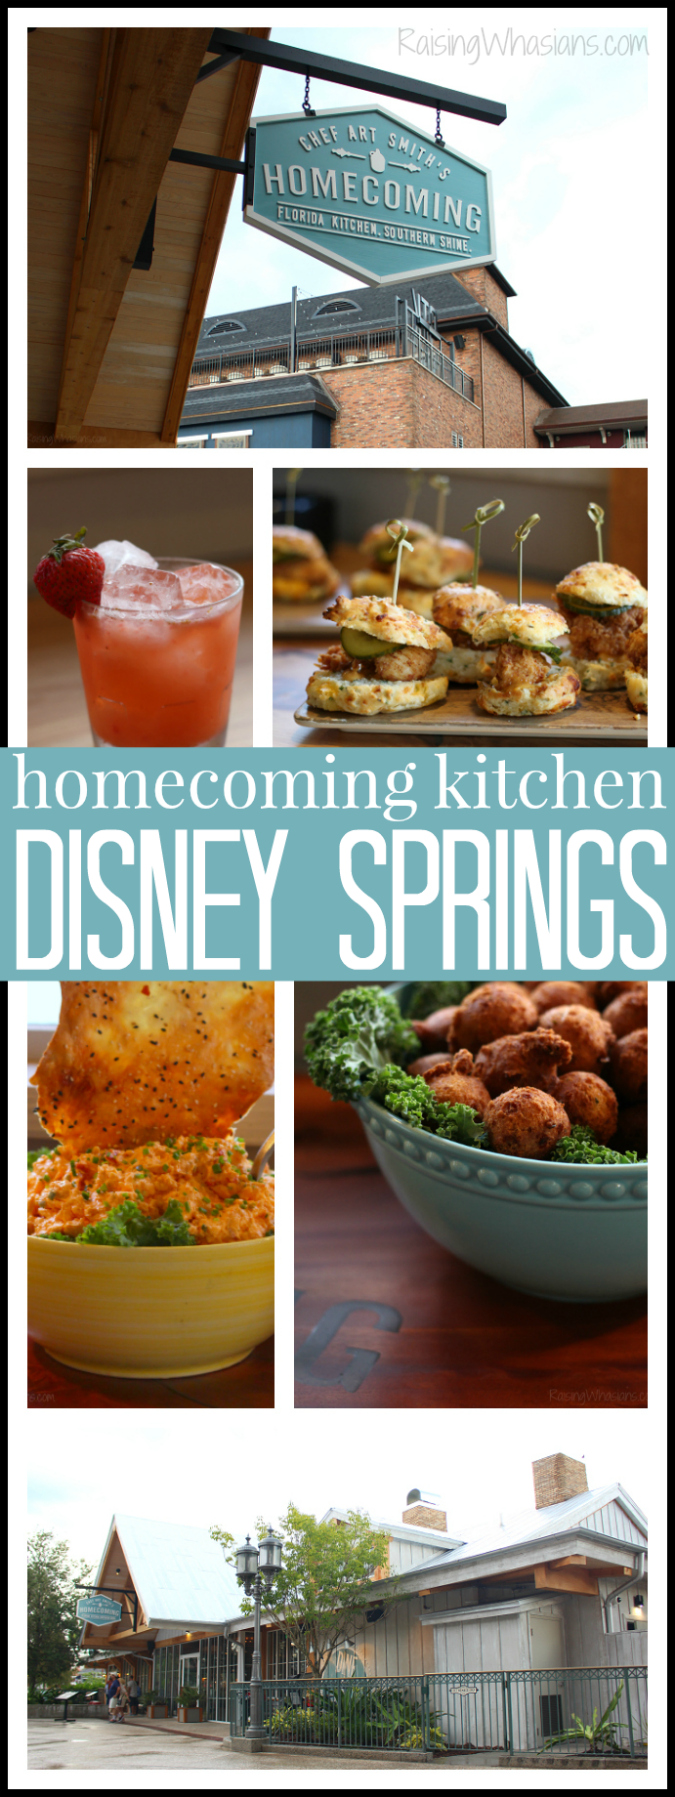 Homecoming kitchen at Disney springs review